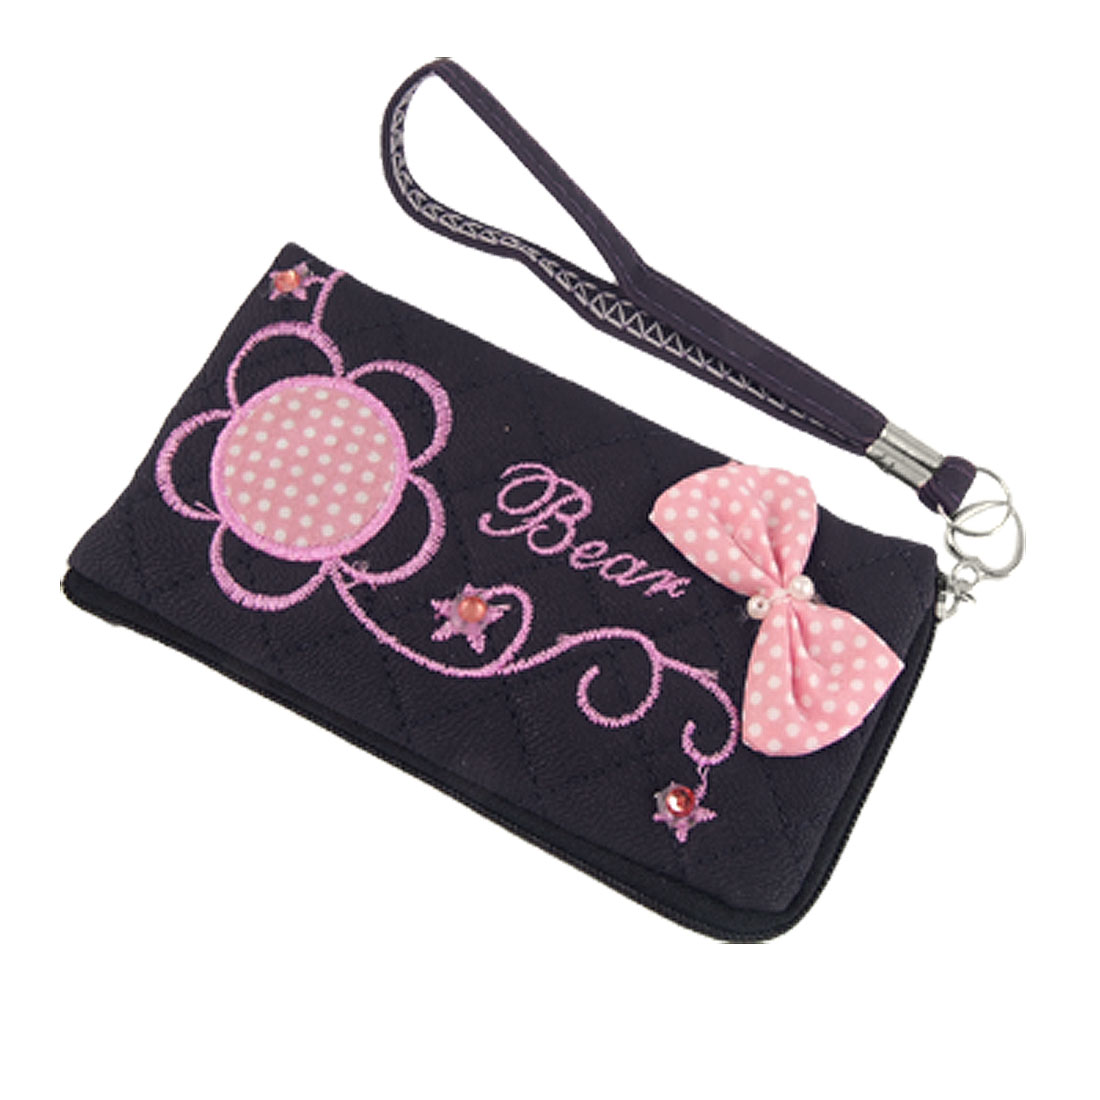 Unique Bargains Manmade Leather Pink Embroidery Zipper Pouch Bag for Phone - image 1 de 1